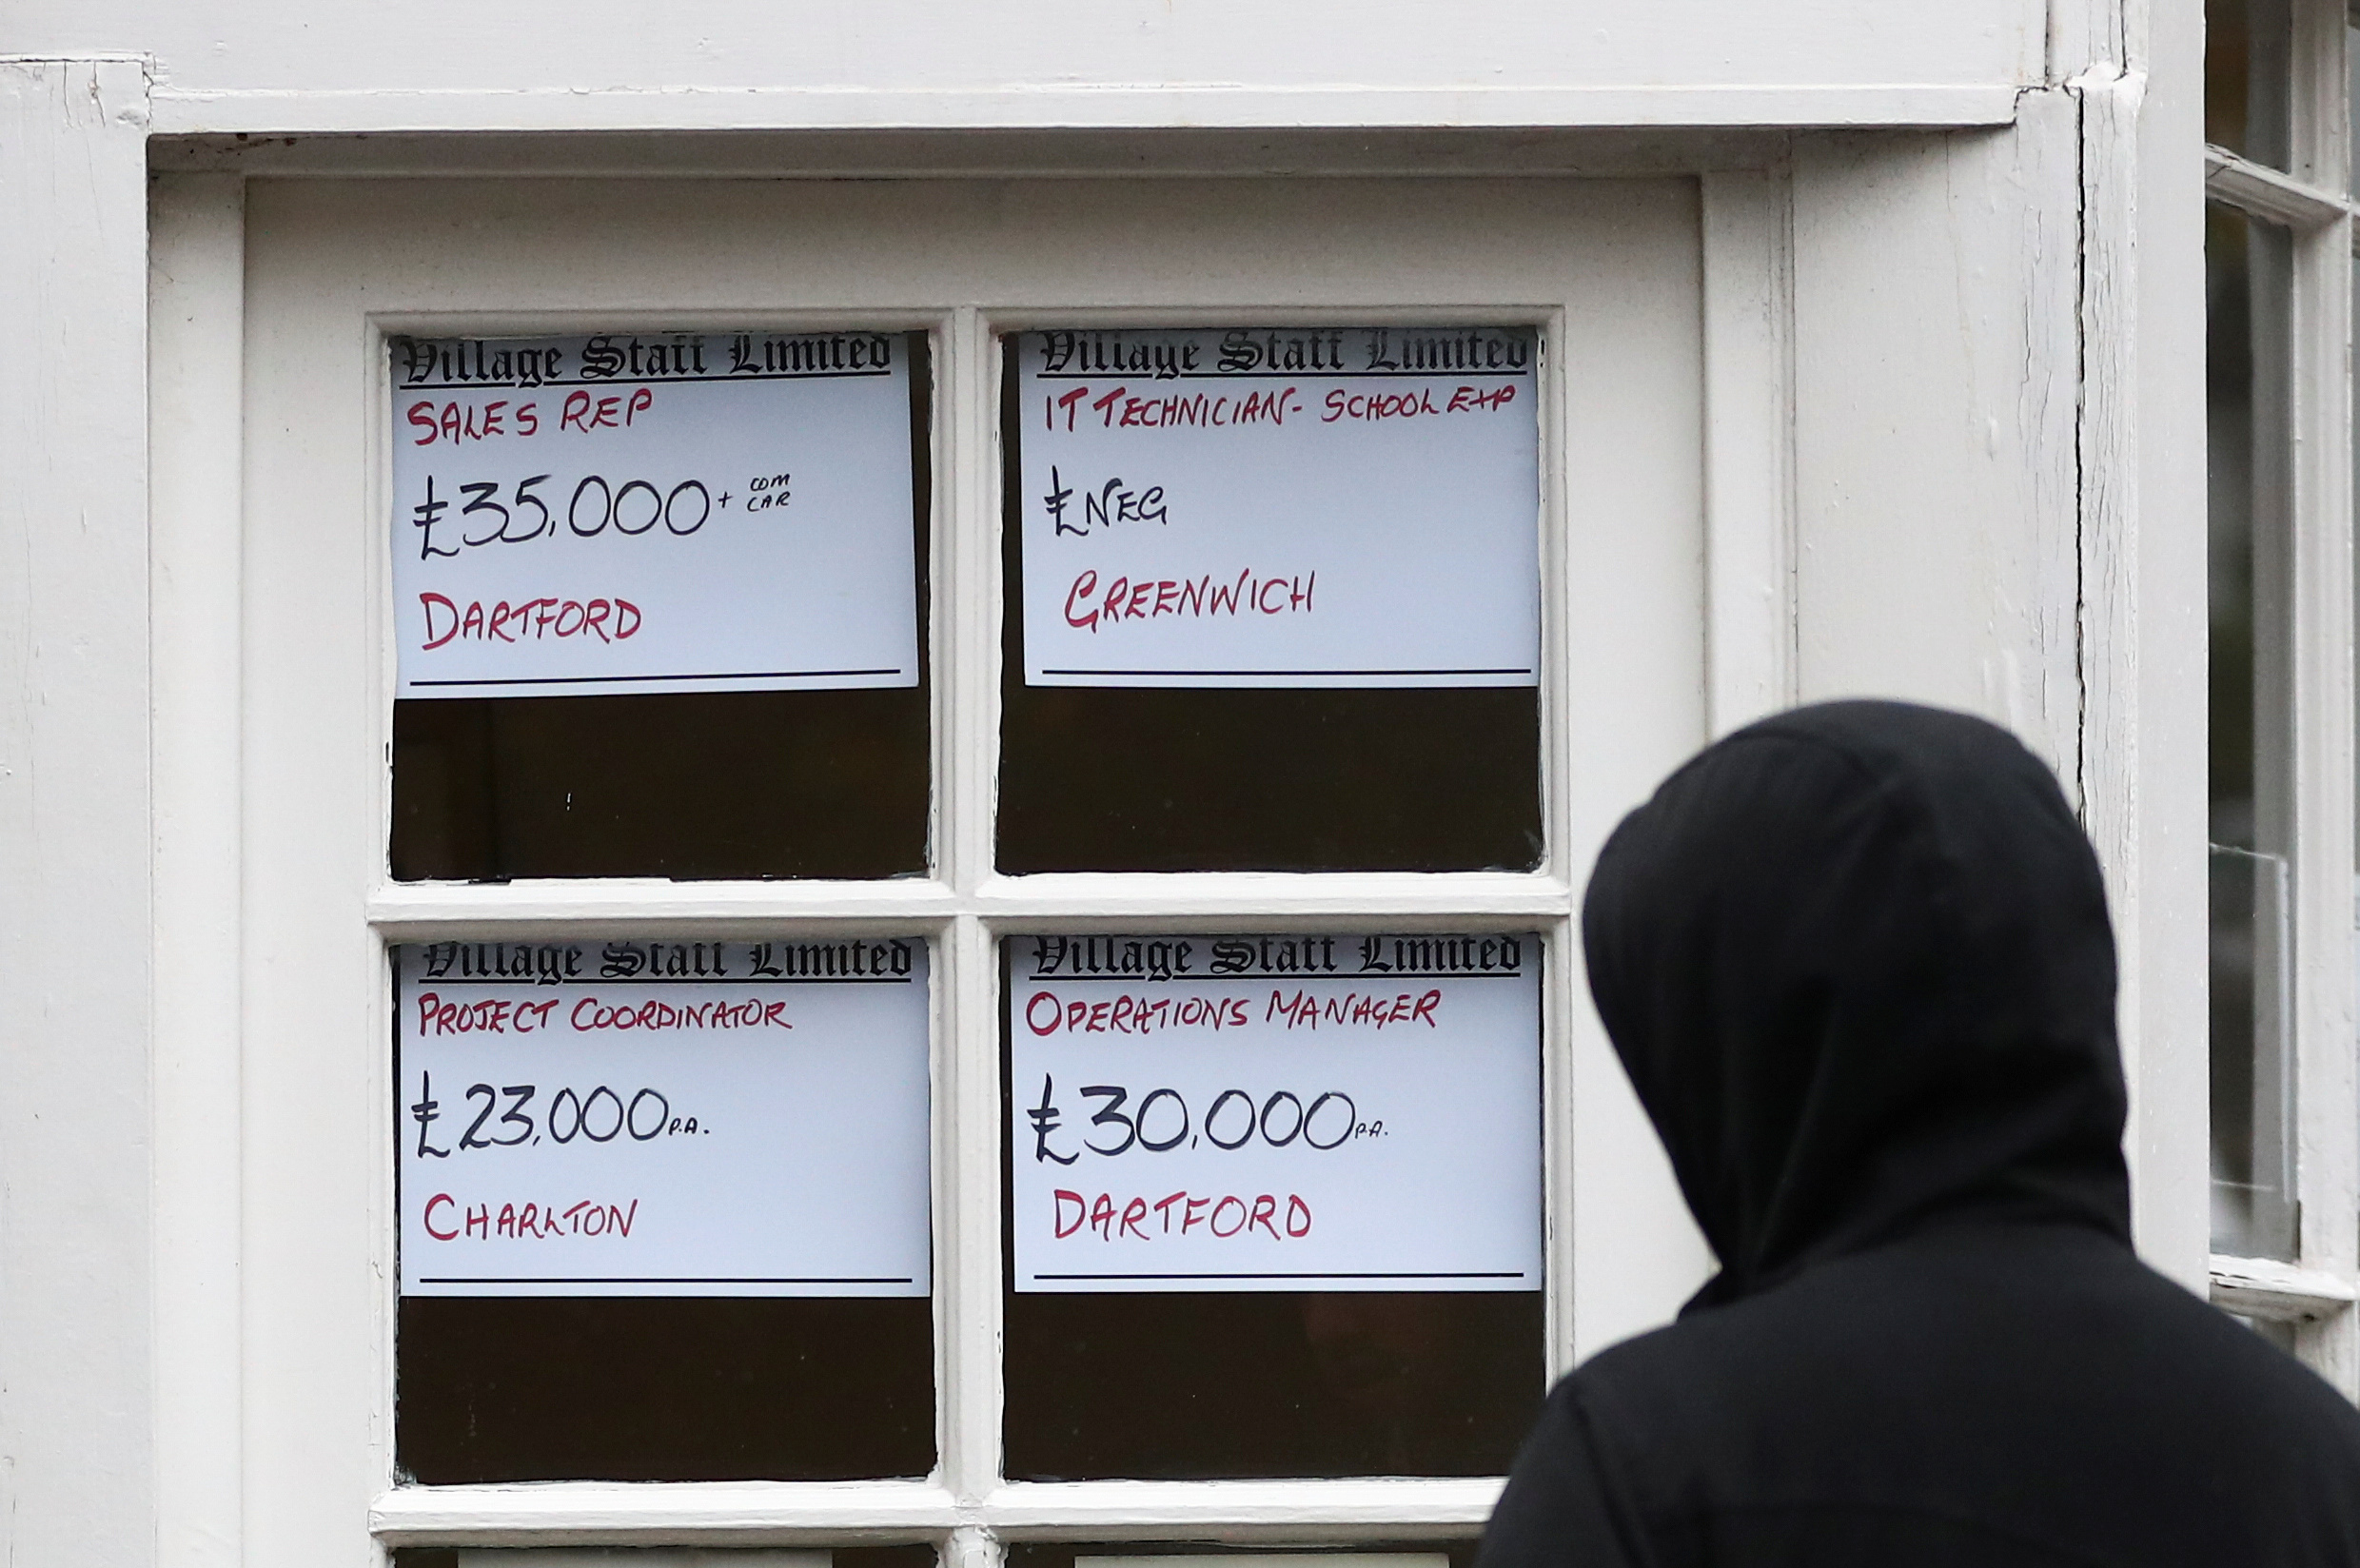 A person looks at the adverts in the window of a job agency in London, Britain October 13, 2020. REUTERS/Hannah McKay